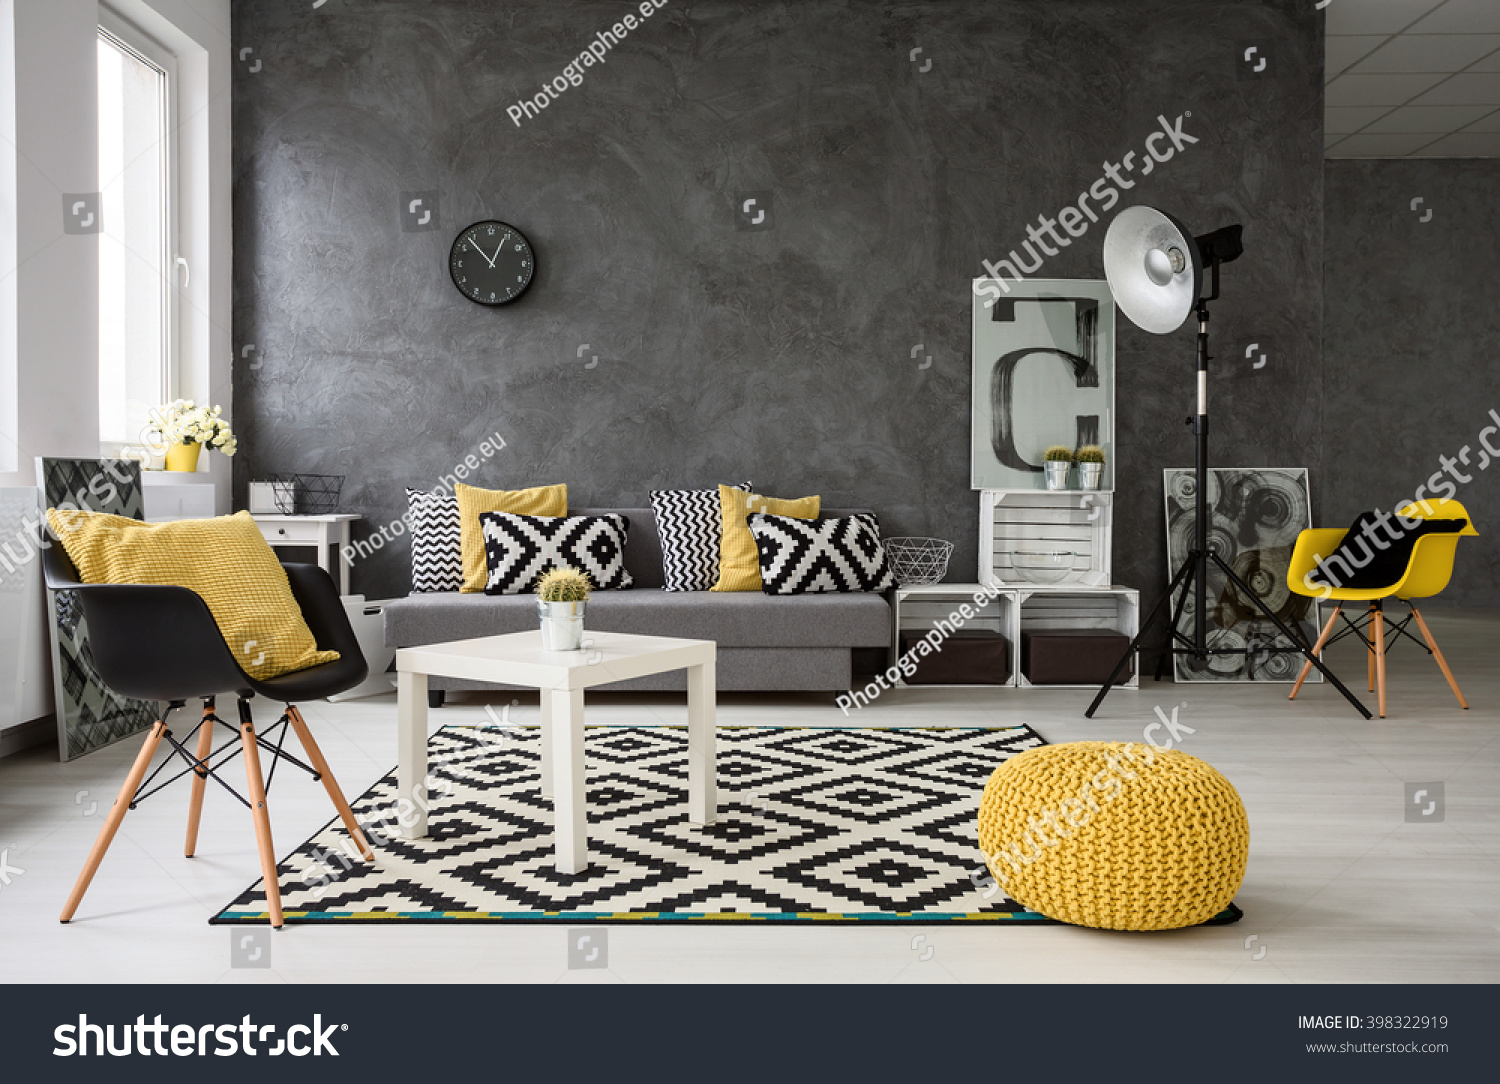 Spacious Grey Living Room With Sofa Chairs Standing Lamp Small Coffee